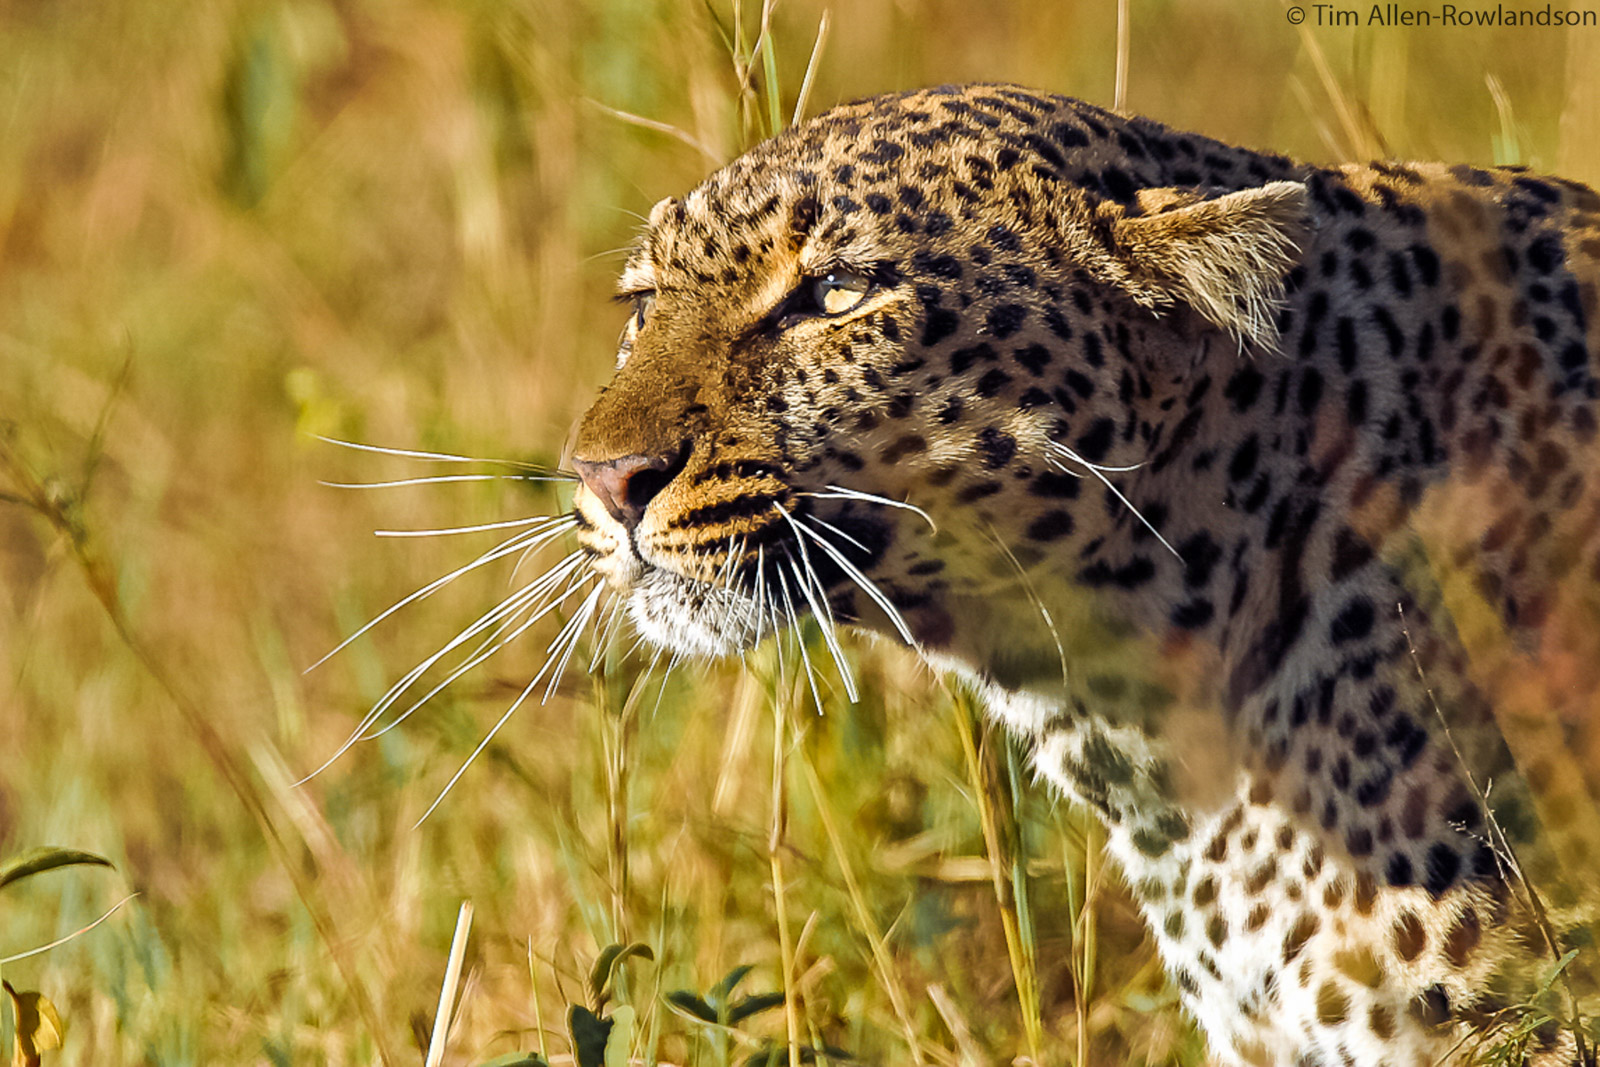 Female leopard in full hunting mode, with flattened ears and low profile, cautiously checking on a young wildebeest she was stalkin